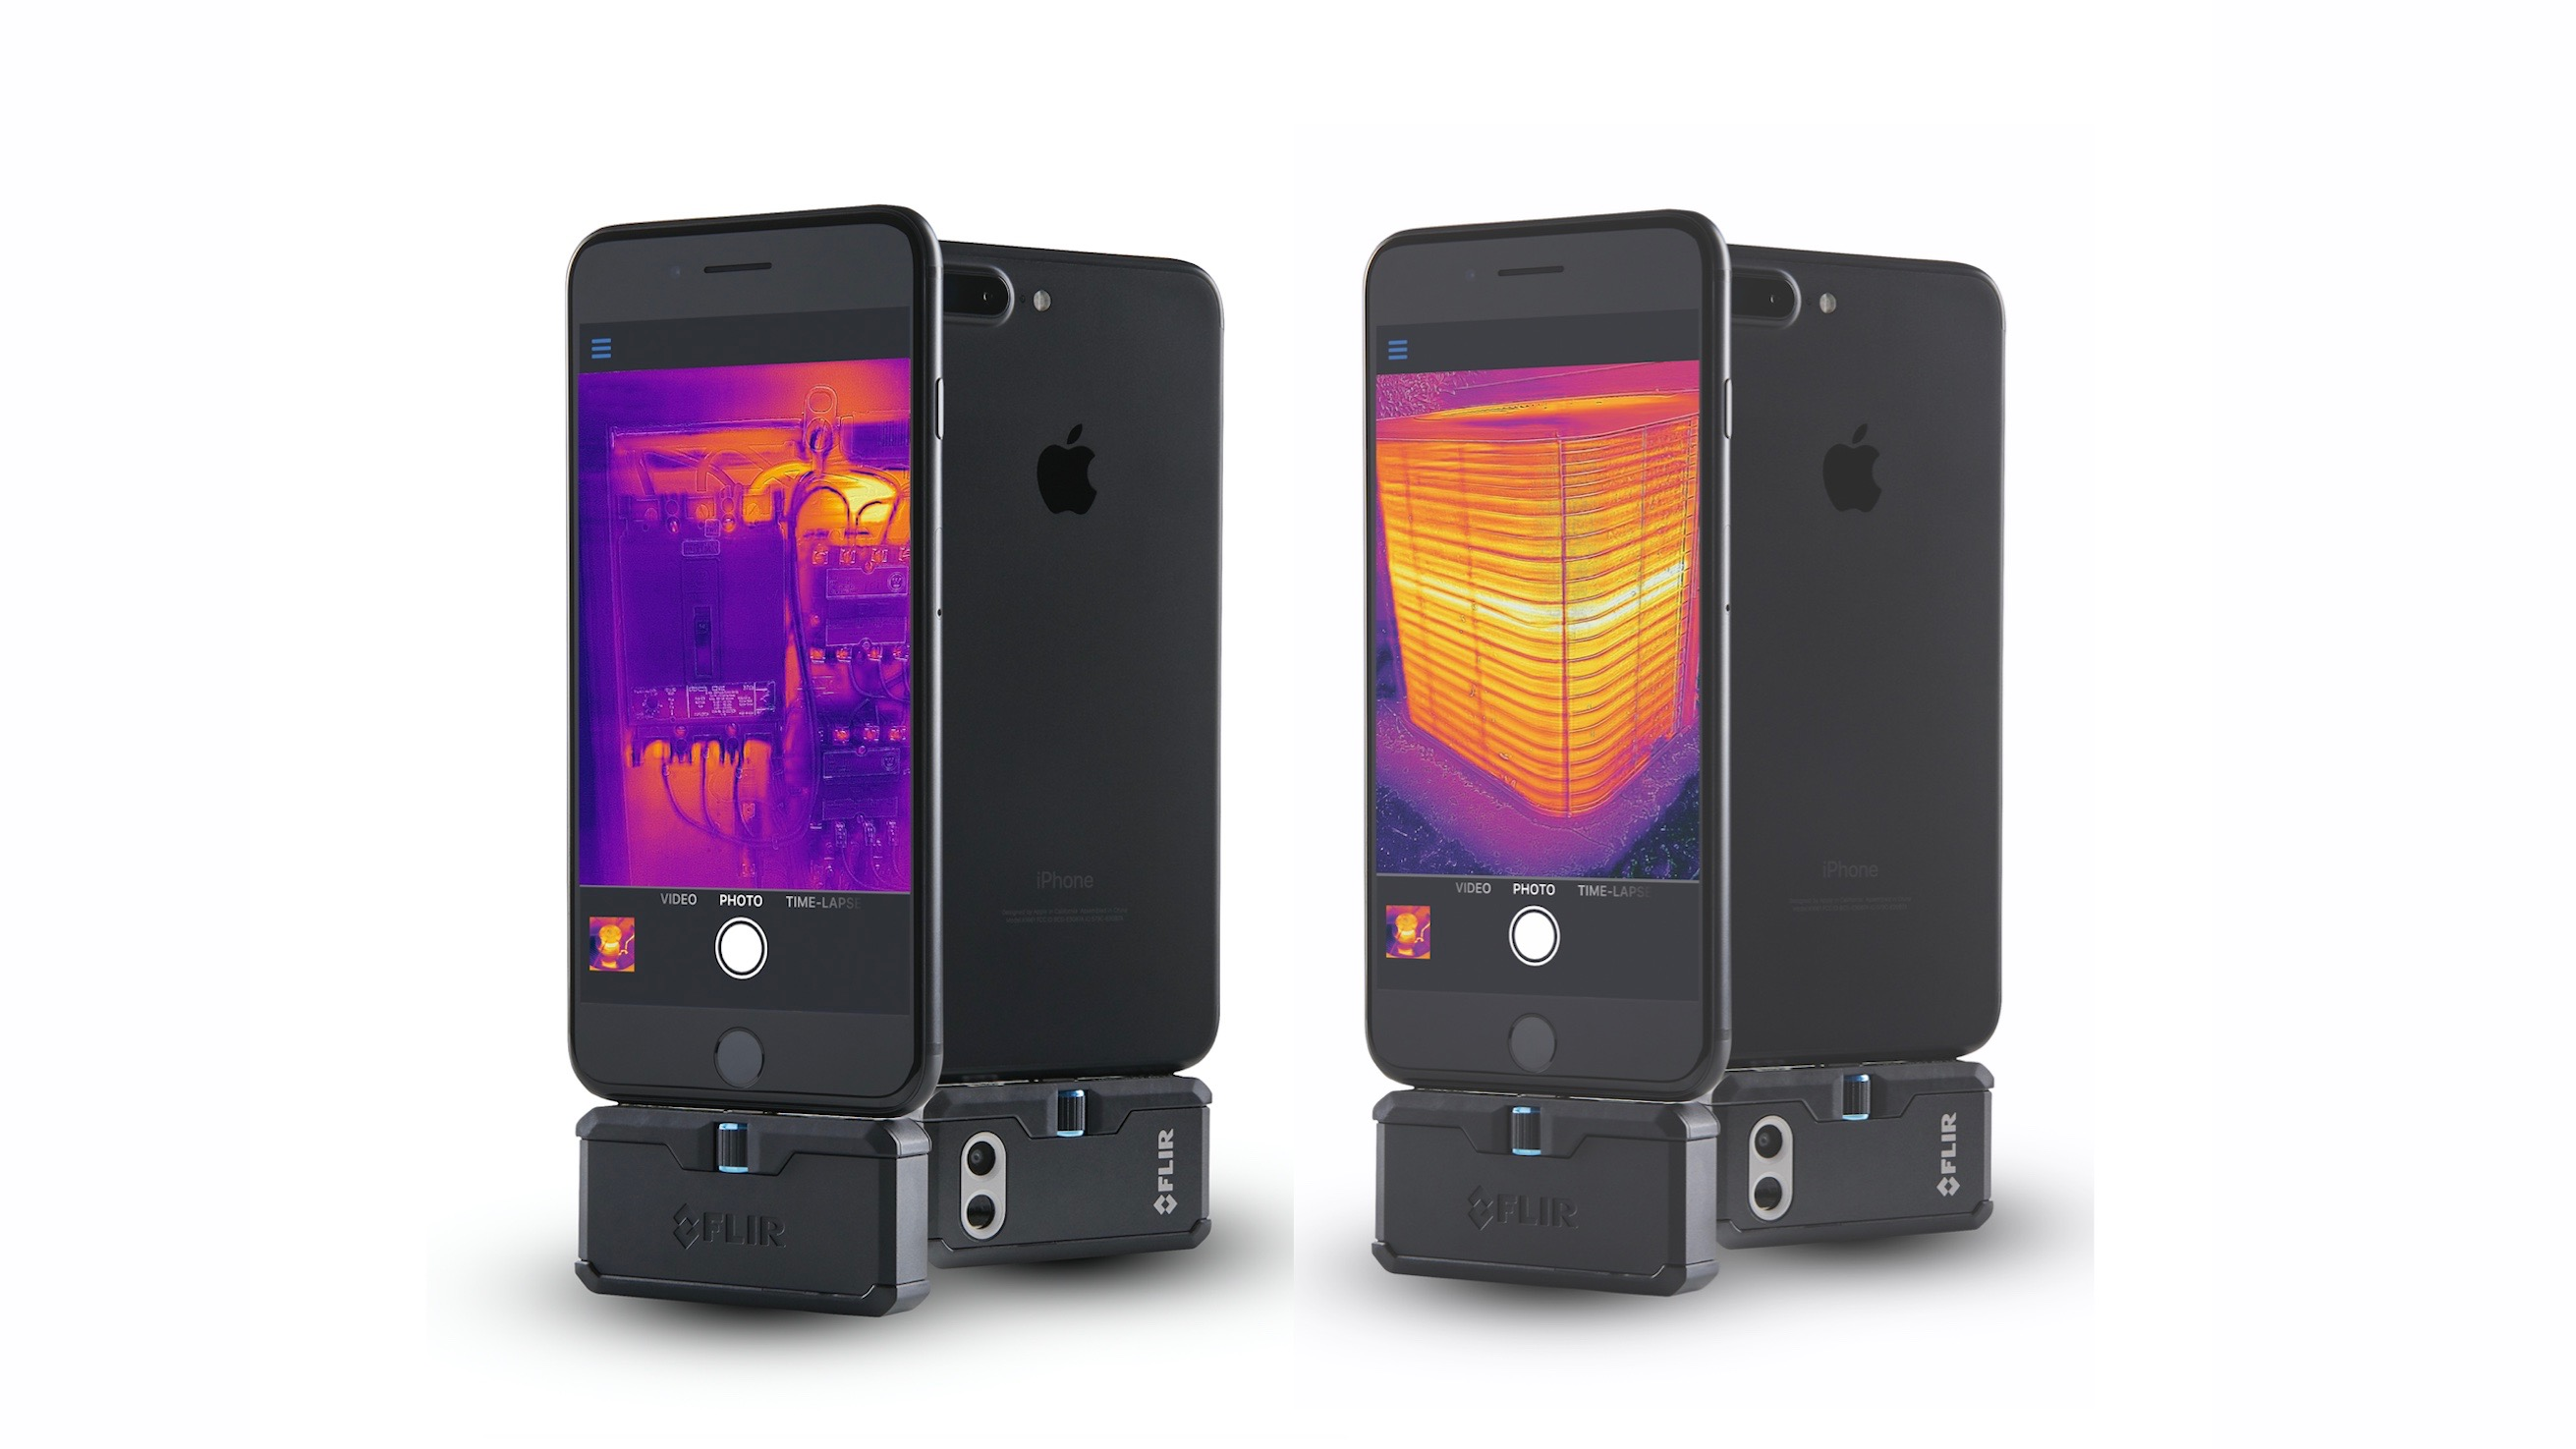 flir unveils one pro lt thermal image camera for iphone with more affordable price